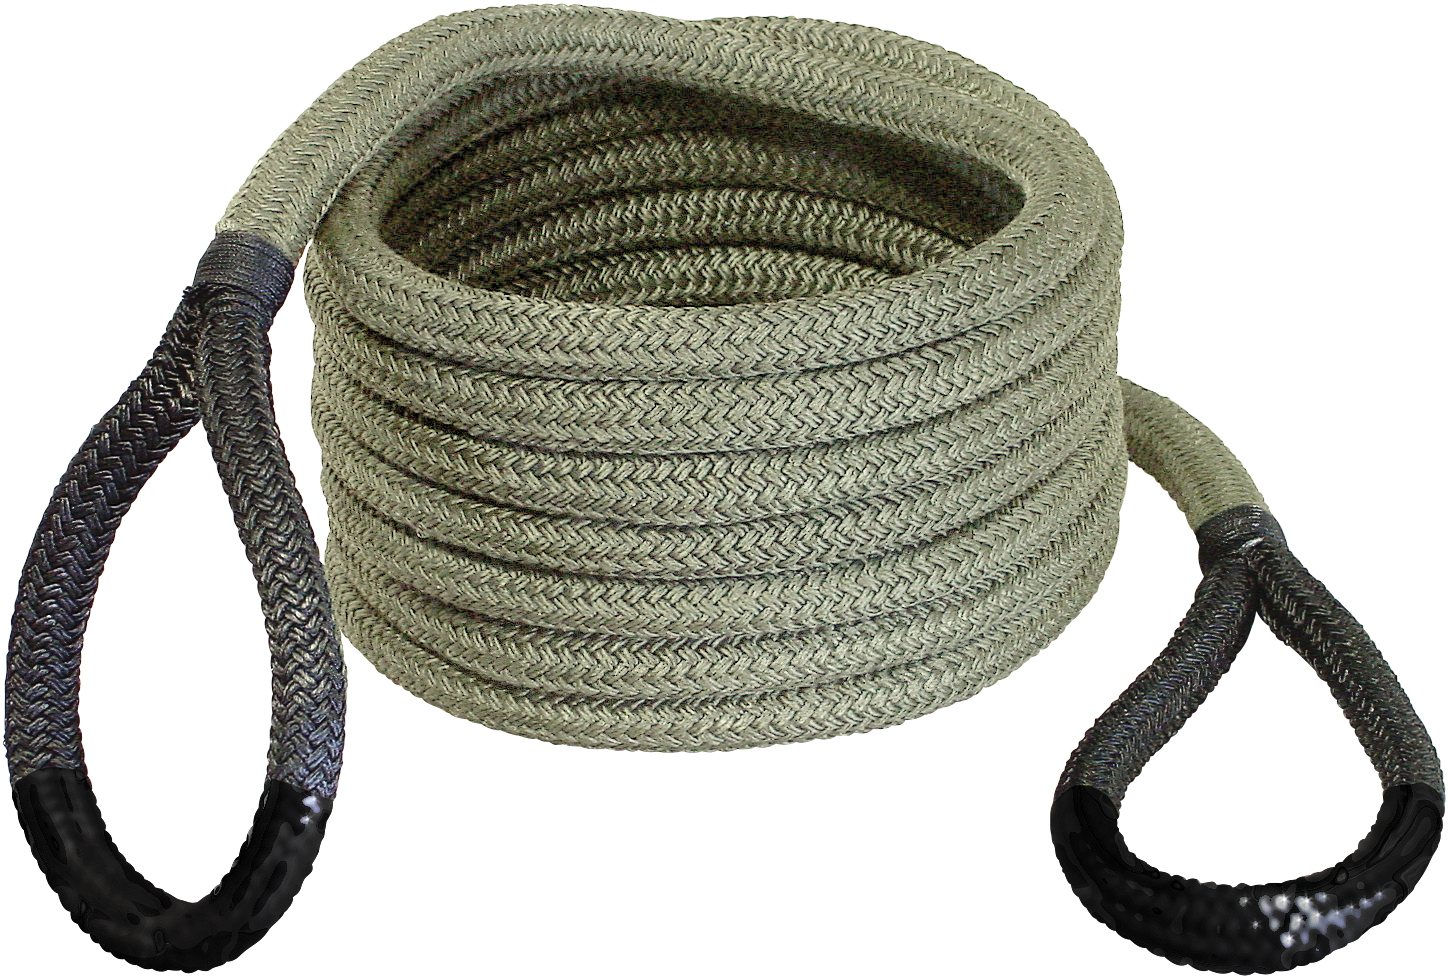 176655BKG Bubba Rope Recovery Strap 3/4 Inch Round X 20 Foot Long